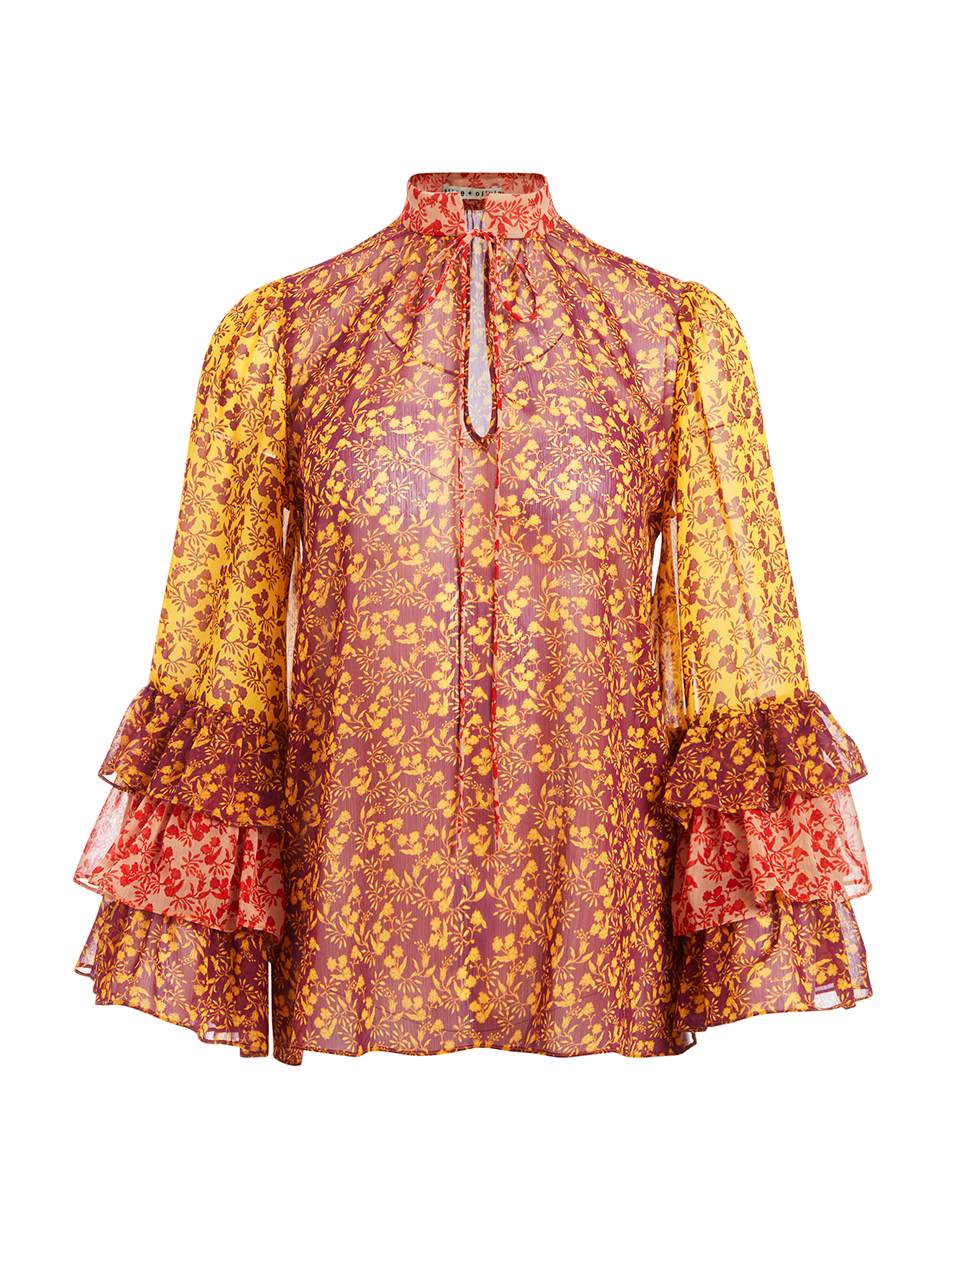 Alice + Olivia Justice Ruffle Sleeve Blouse in Rome Floral Product Shot